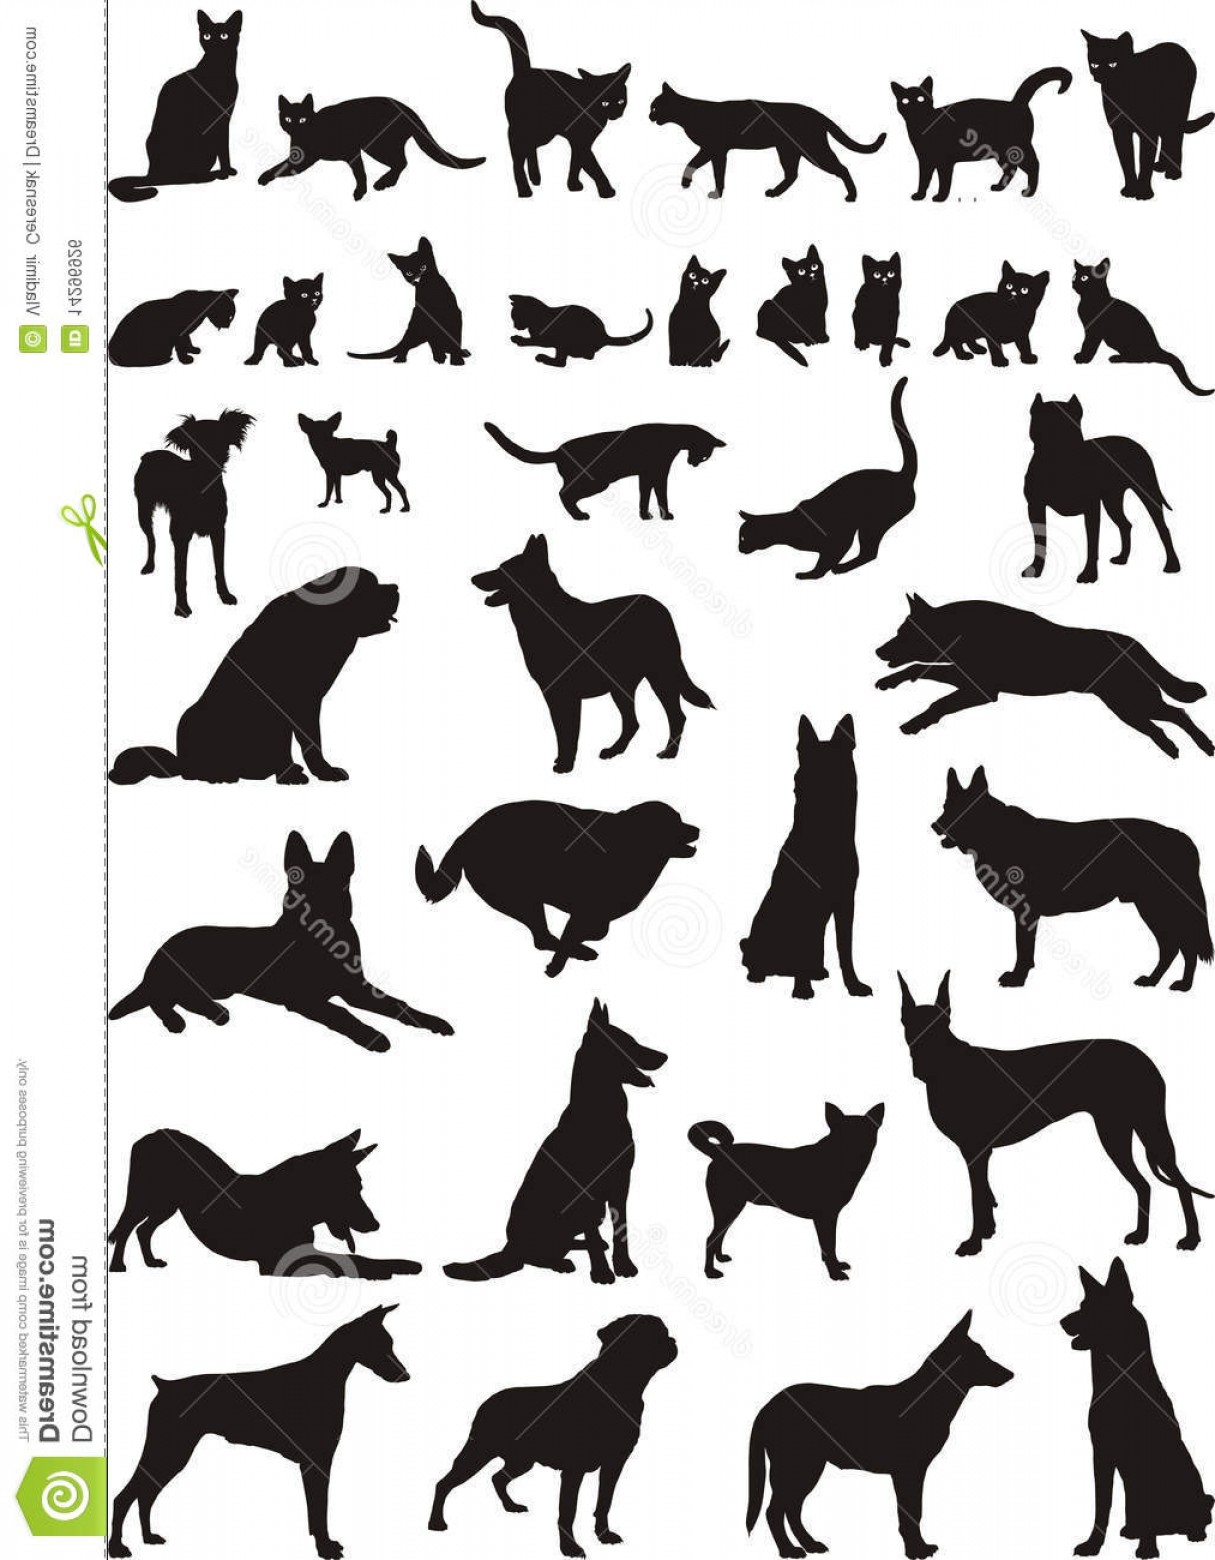 Dog And Cat Vector Illustration: Royalty Free Stock Image Cats Dogs Vector Illustrations Image